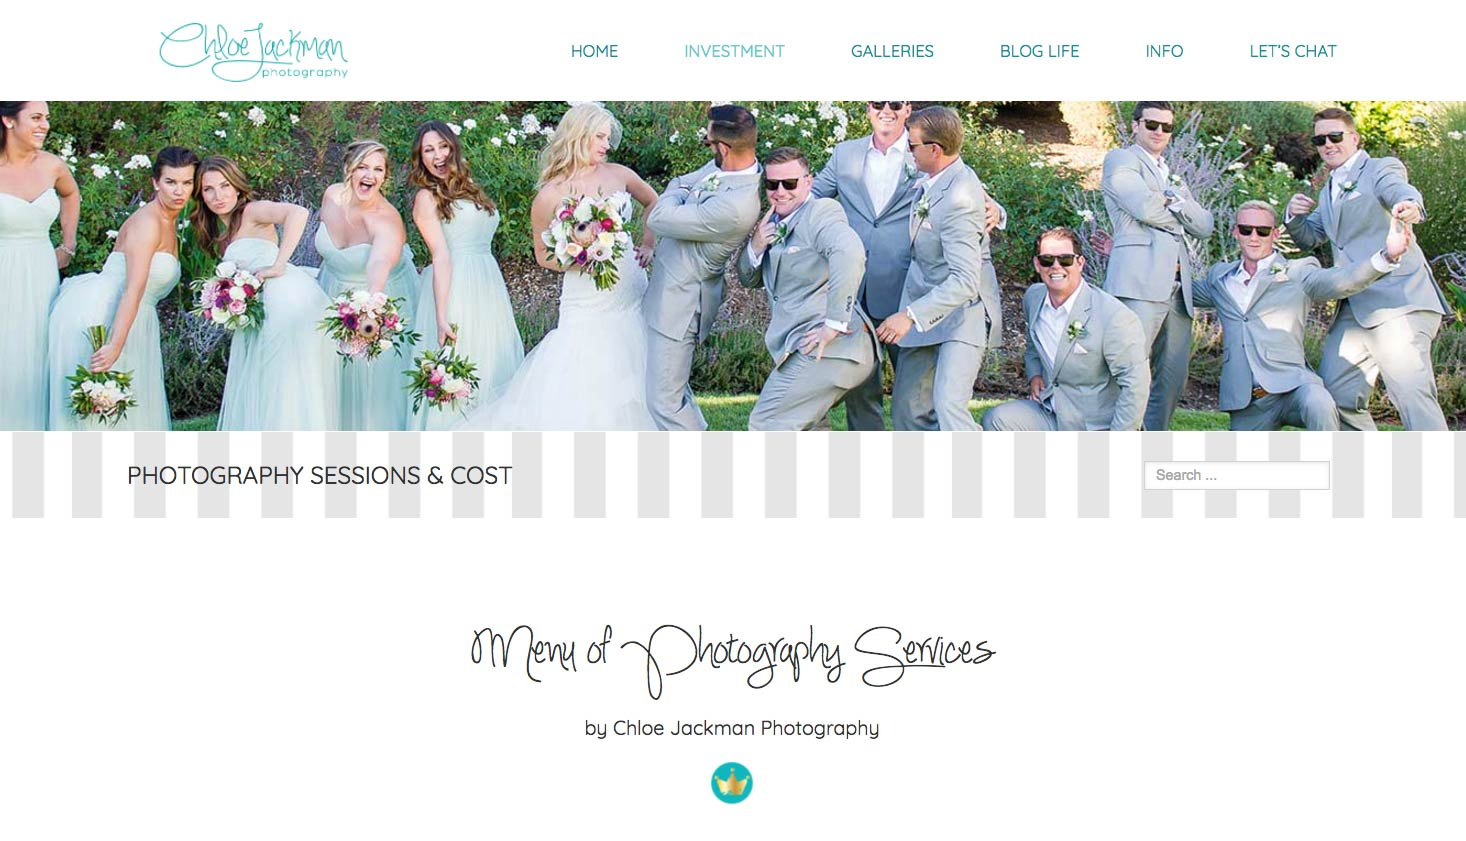 Image & Banner of Wedding Party